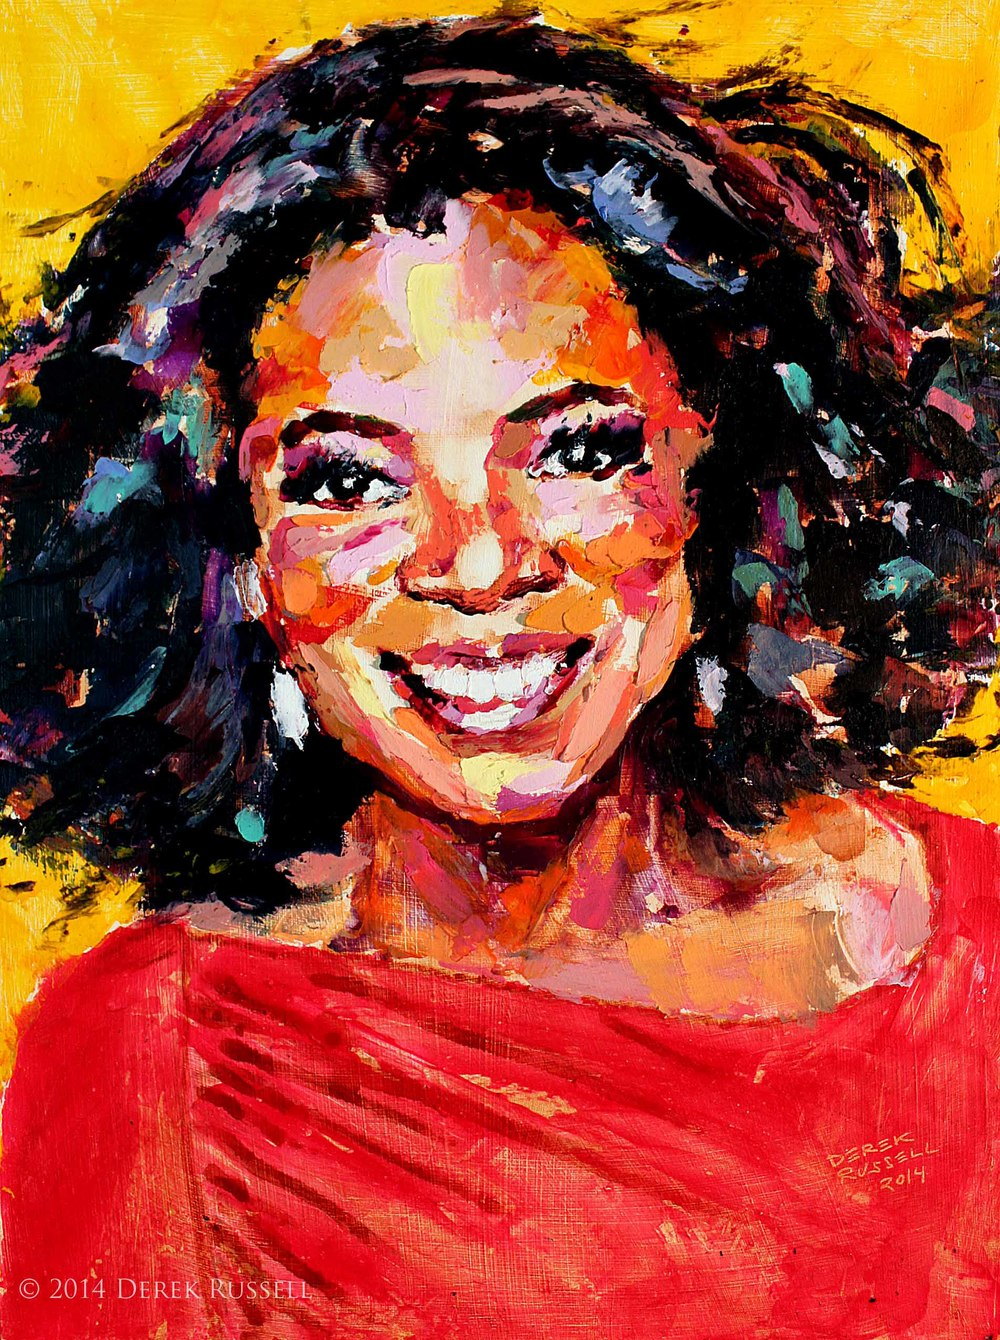 Oprah Winfrey Original Portrait Pop Art Painting by Derek Russell